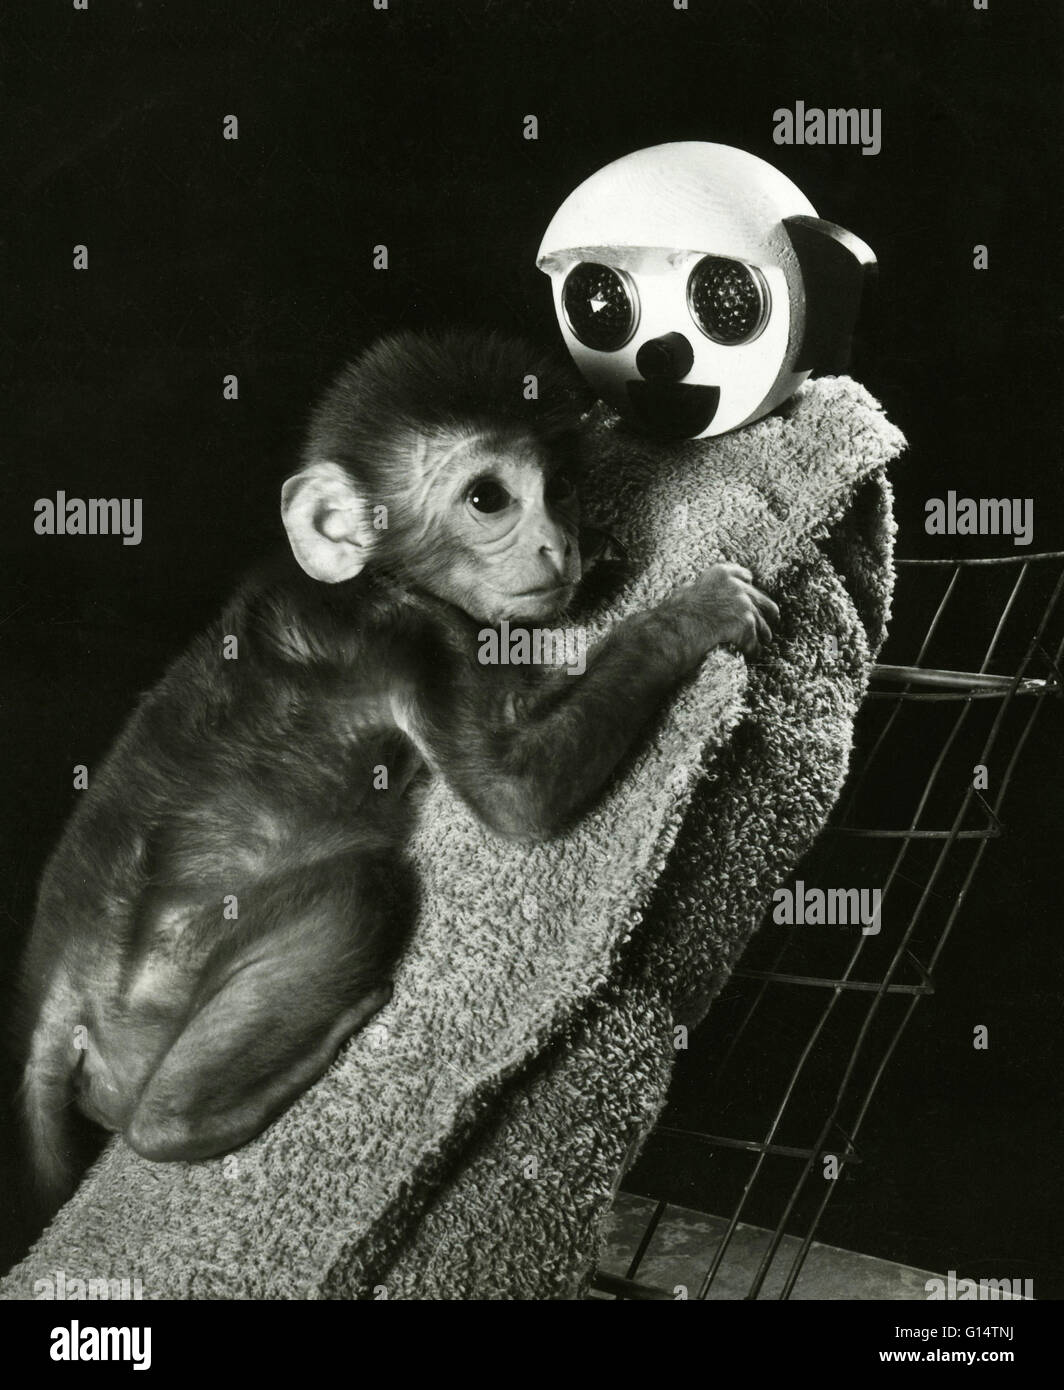 An infant Rhesus monkey (Macaca mulatta) with its cloth surrogate mother during an animal experiment. Maternal deprivation - Stock Image